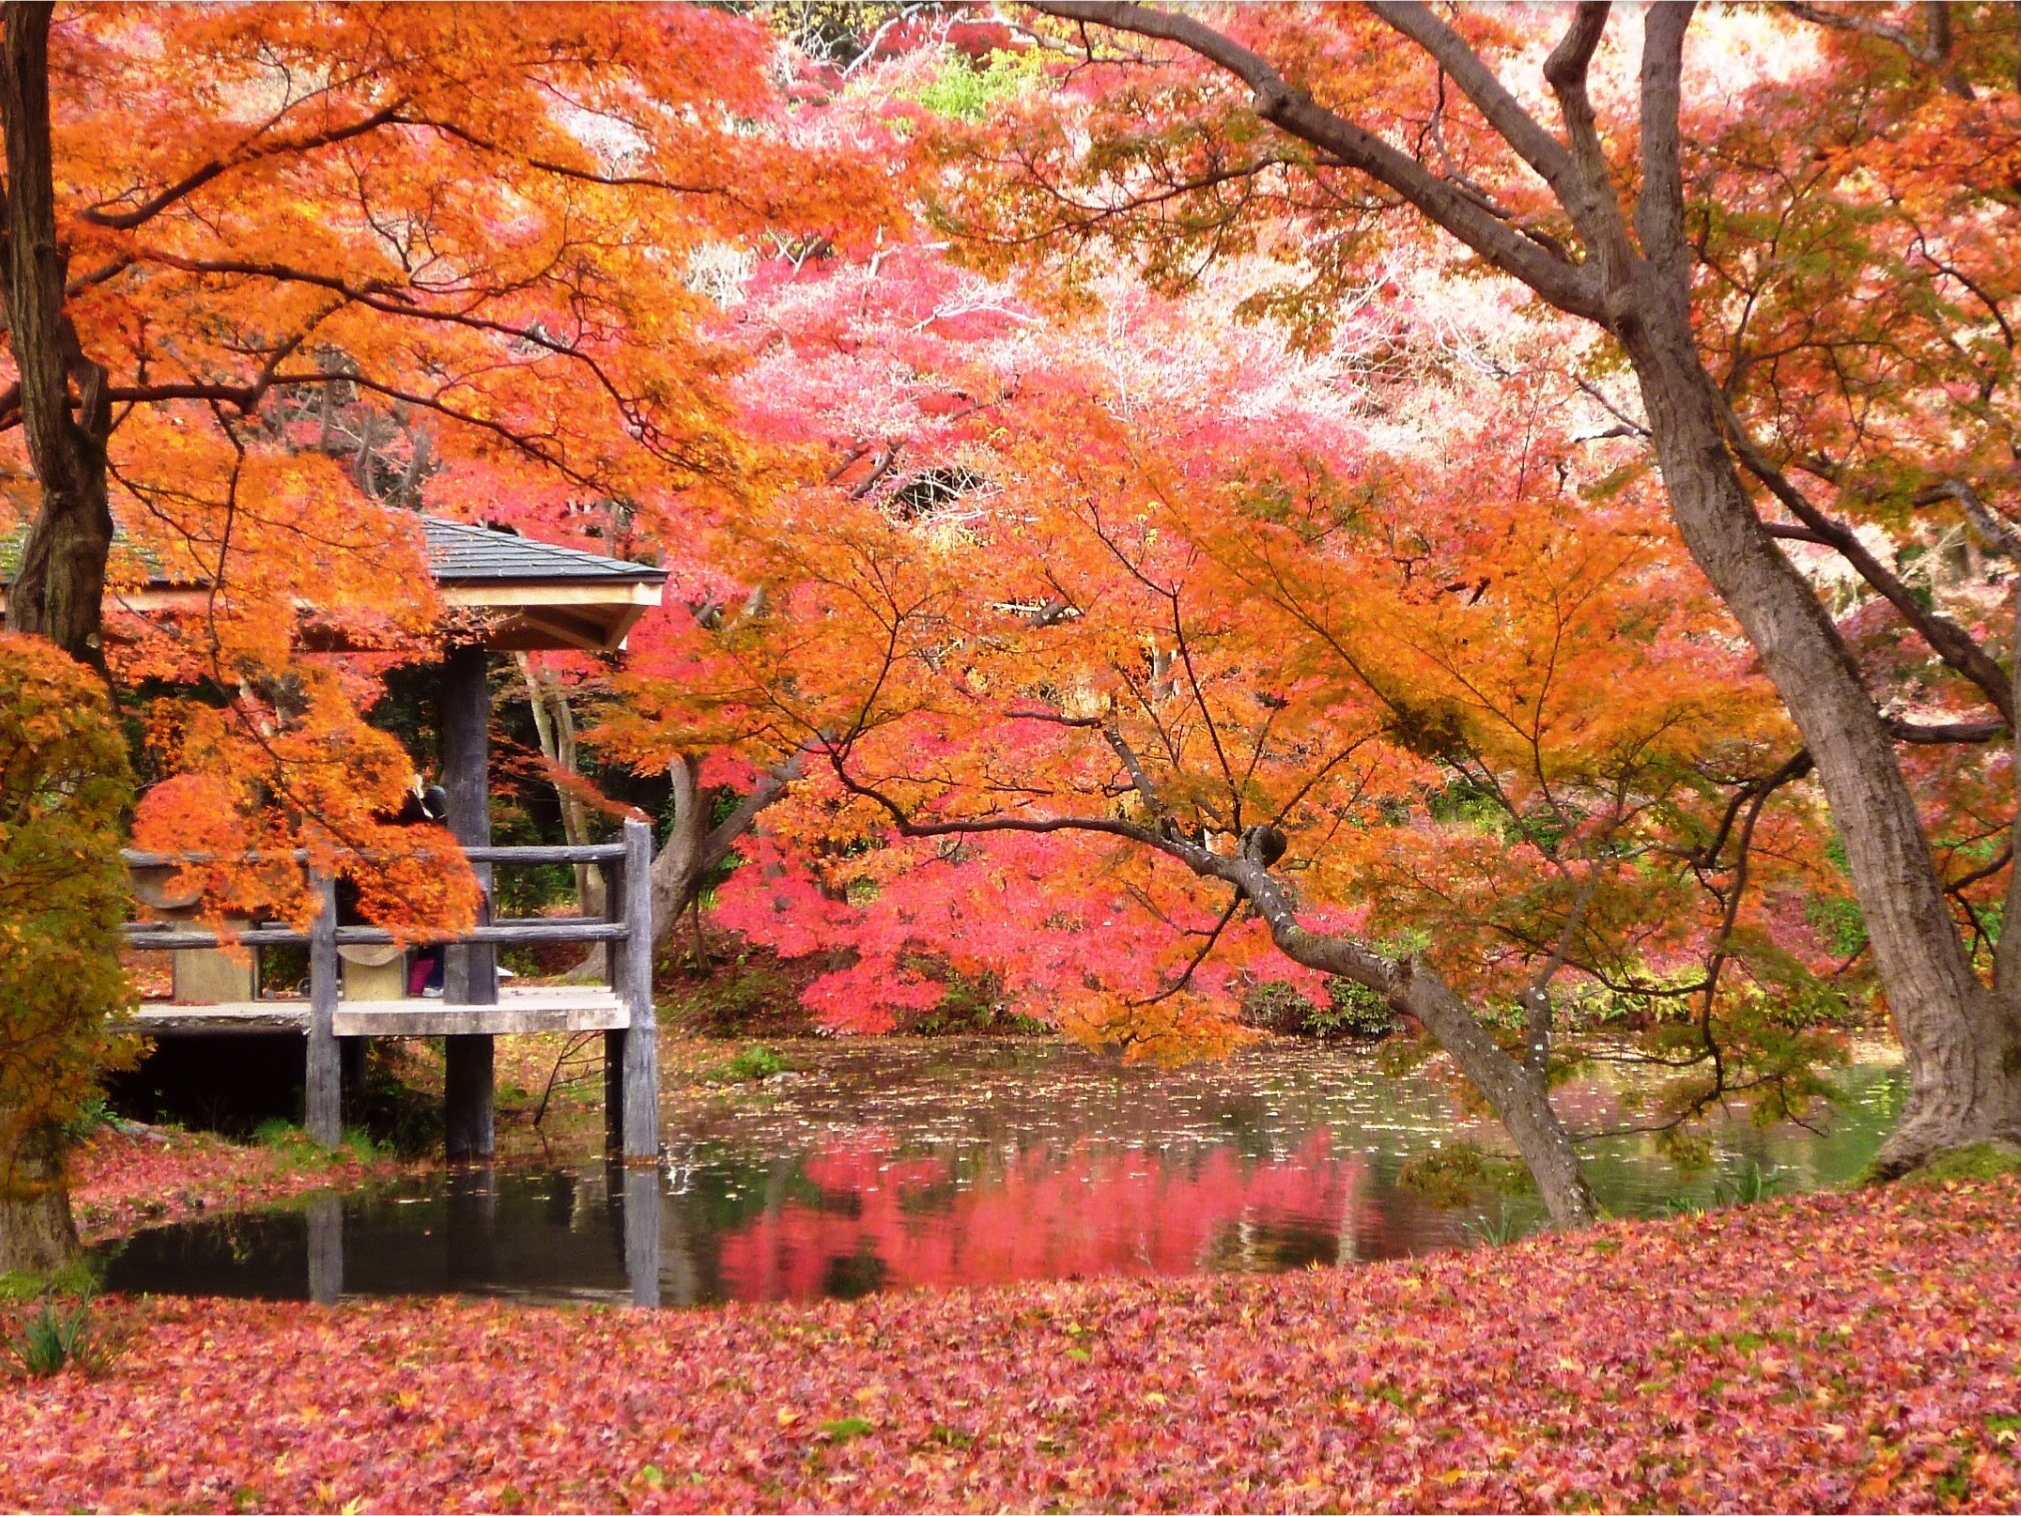 A little-known place for viewing autumn leaves